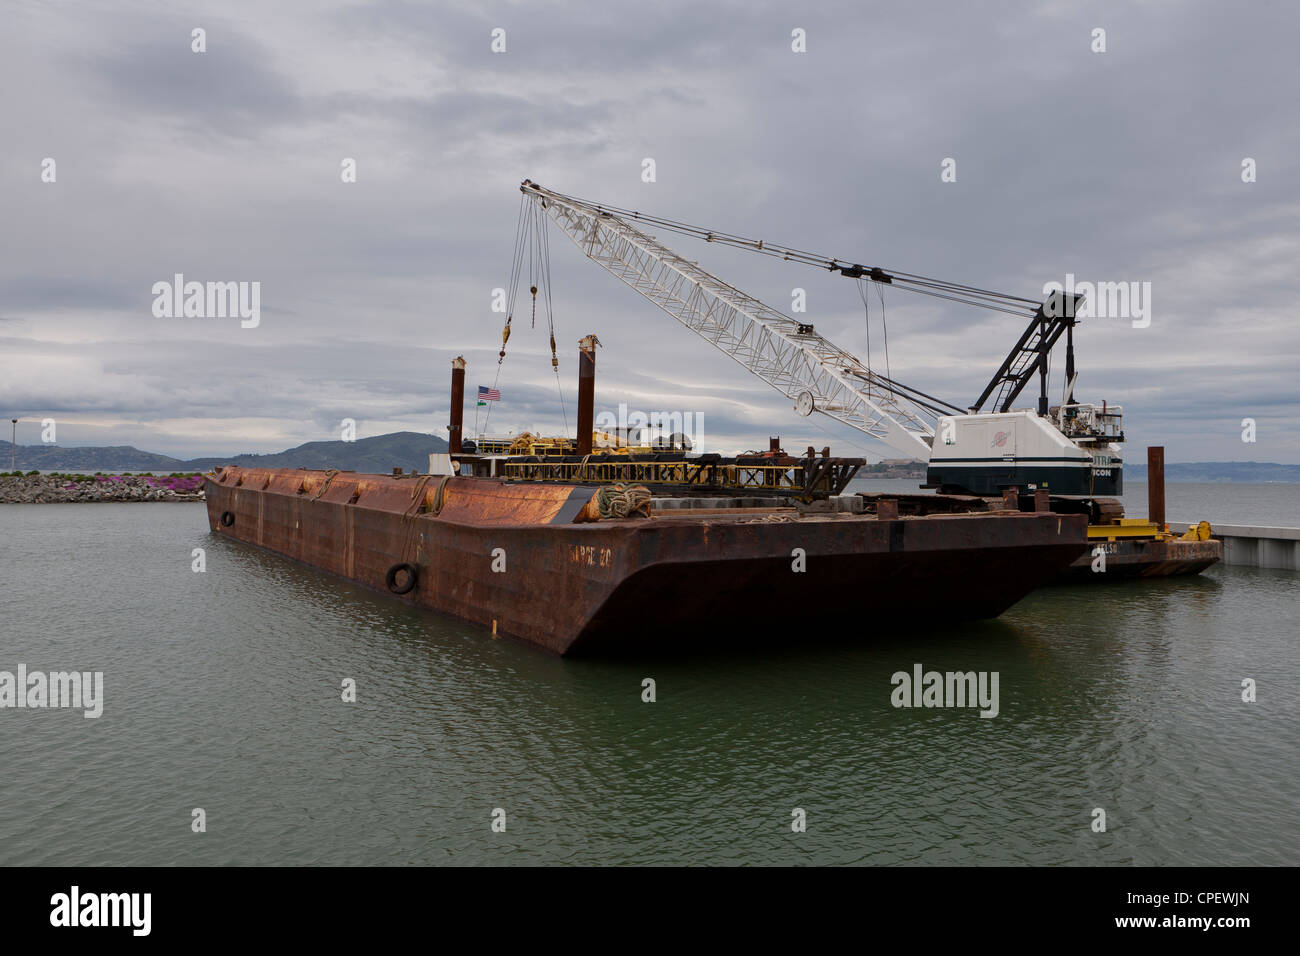 An old rusty barge on water - Stock Image